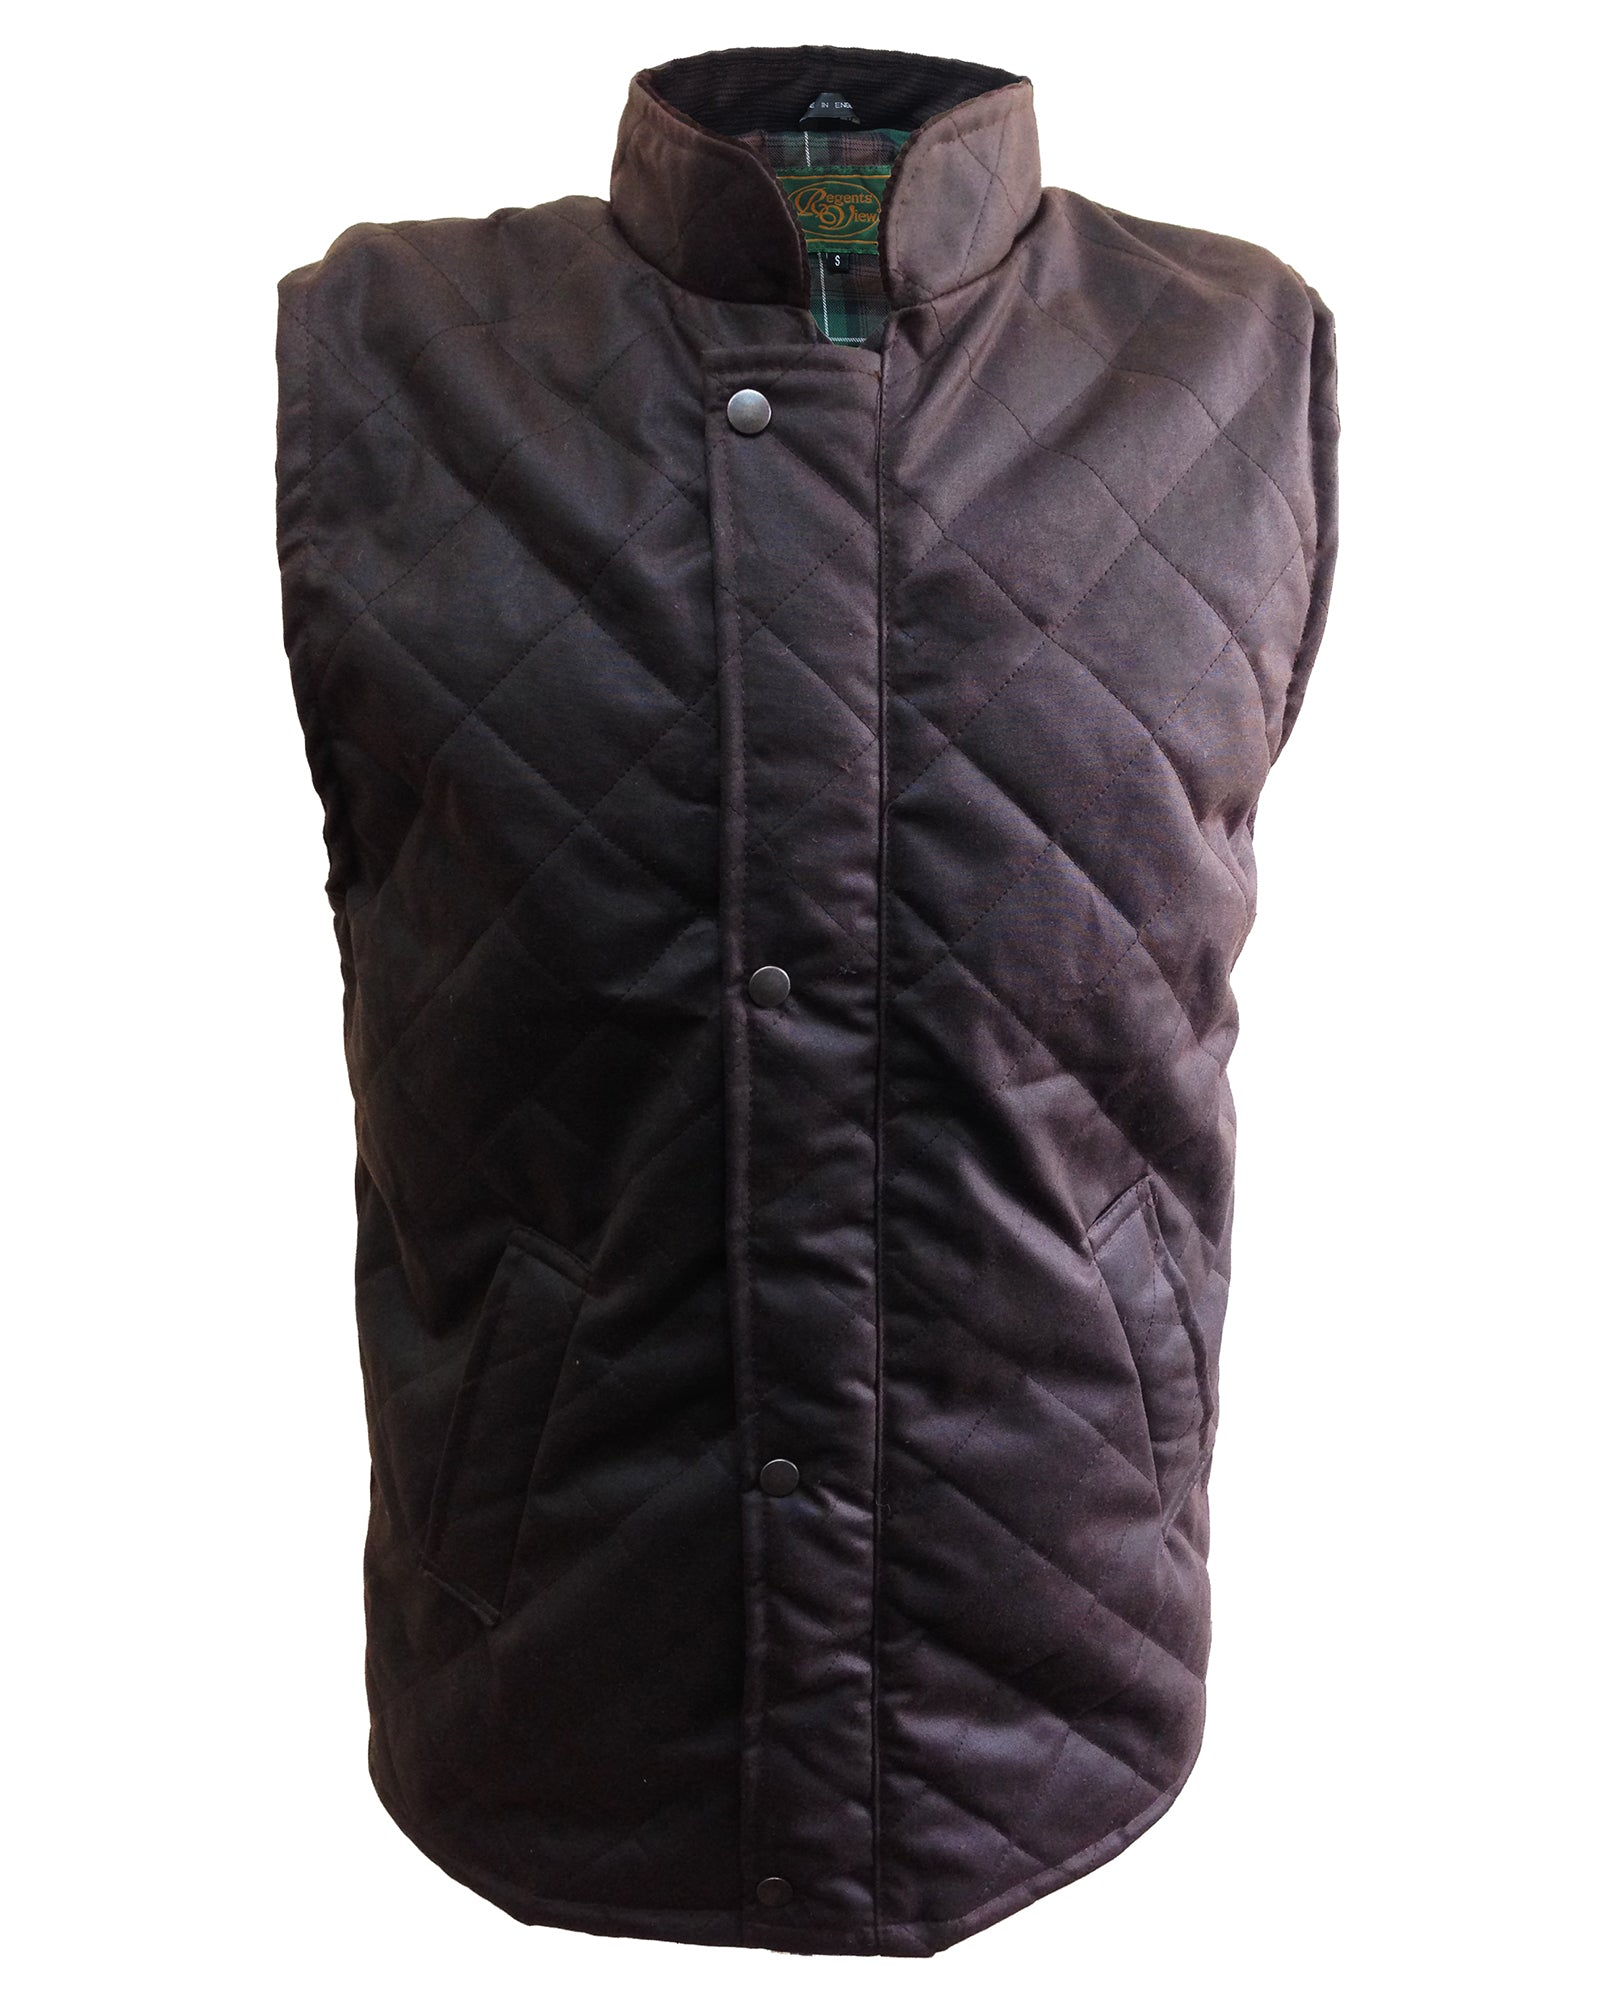 Regents View Diamond Quilted 100% Waxed Cotton Bodywarmer - Brown